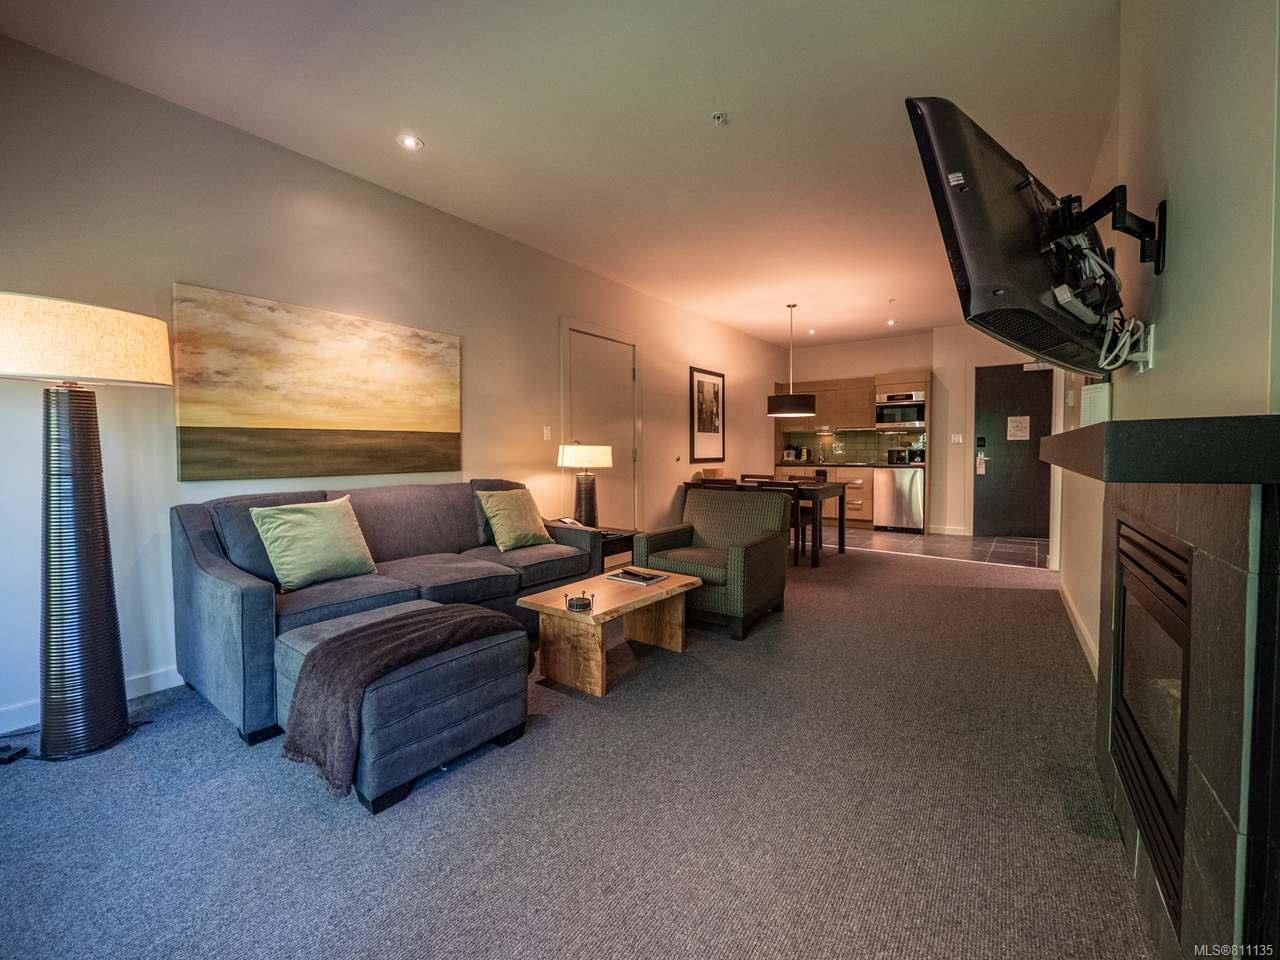 Main Photo: 322 596 Marine Dr in UCLUELET: PA Ucluelet Condo for sale (Port Alberni)  : MLS®# 811135